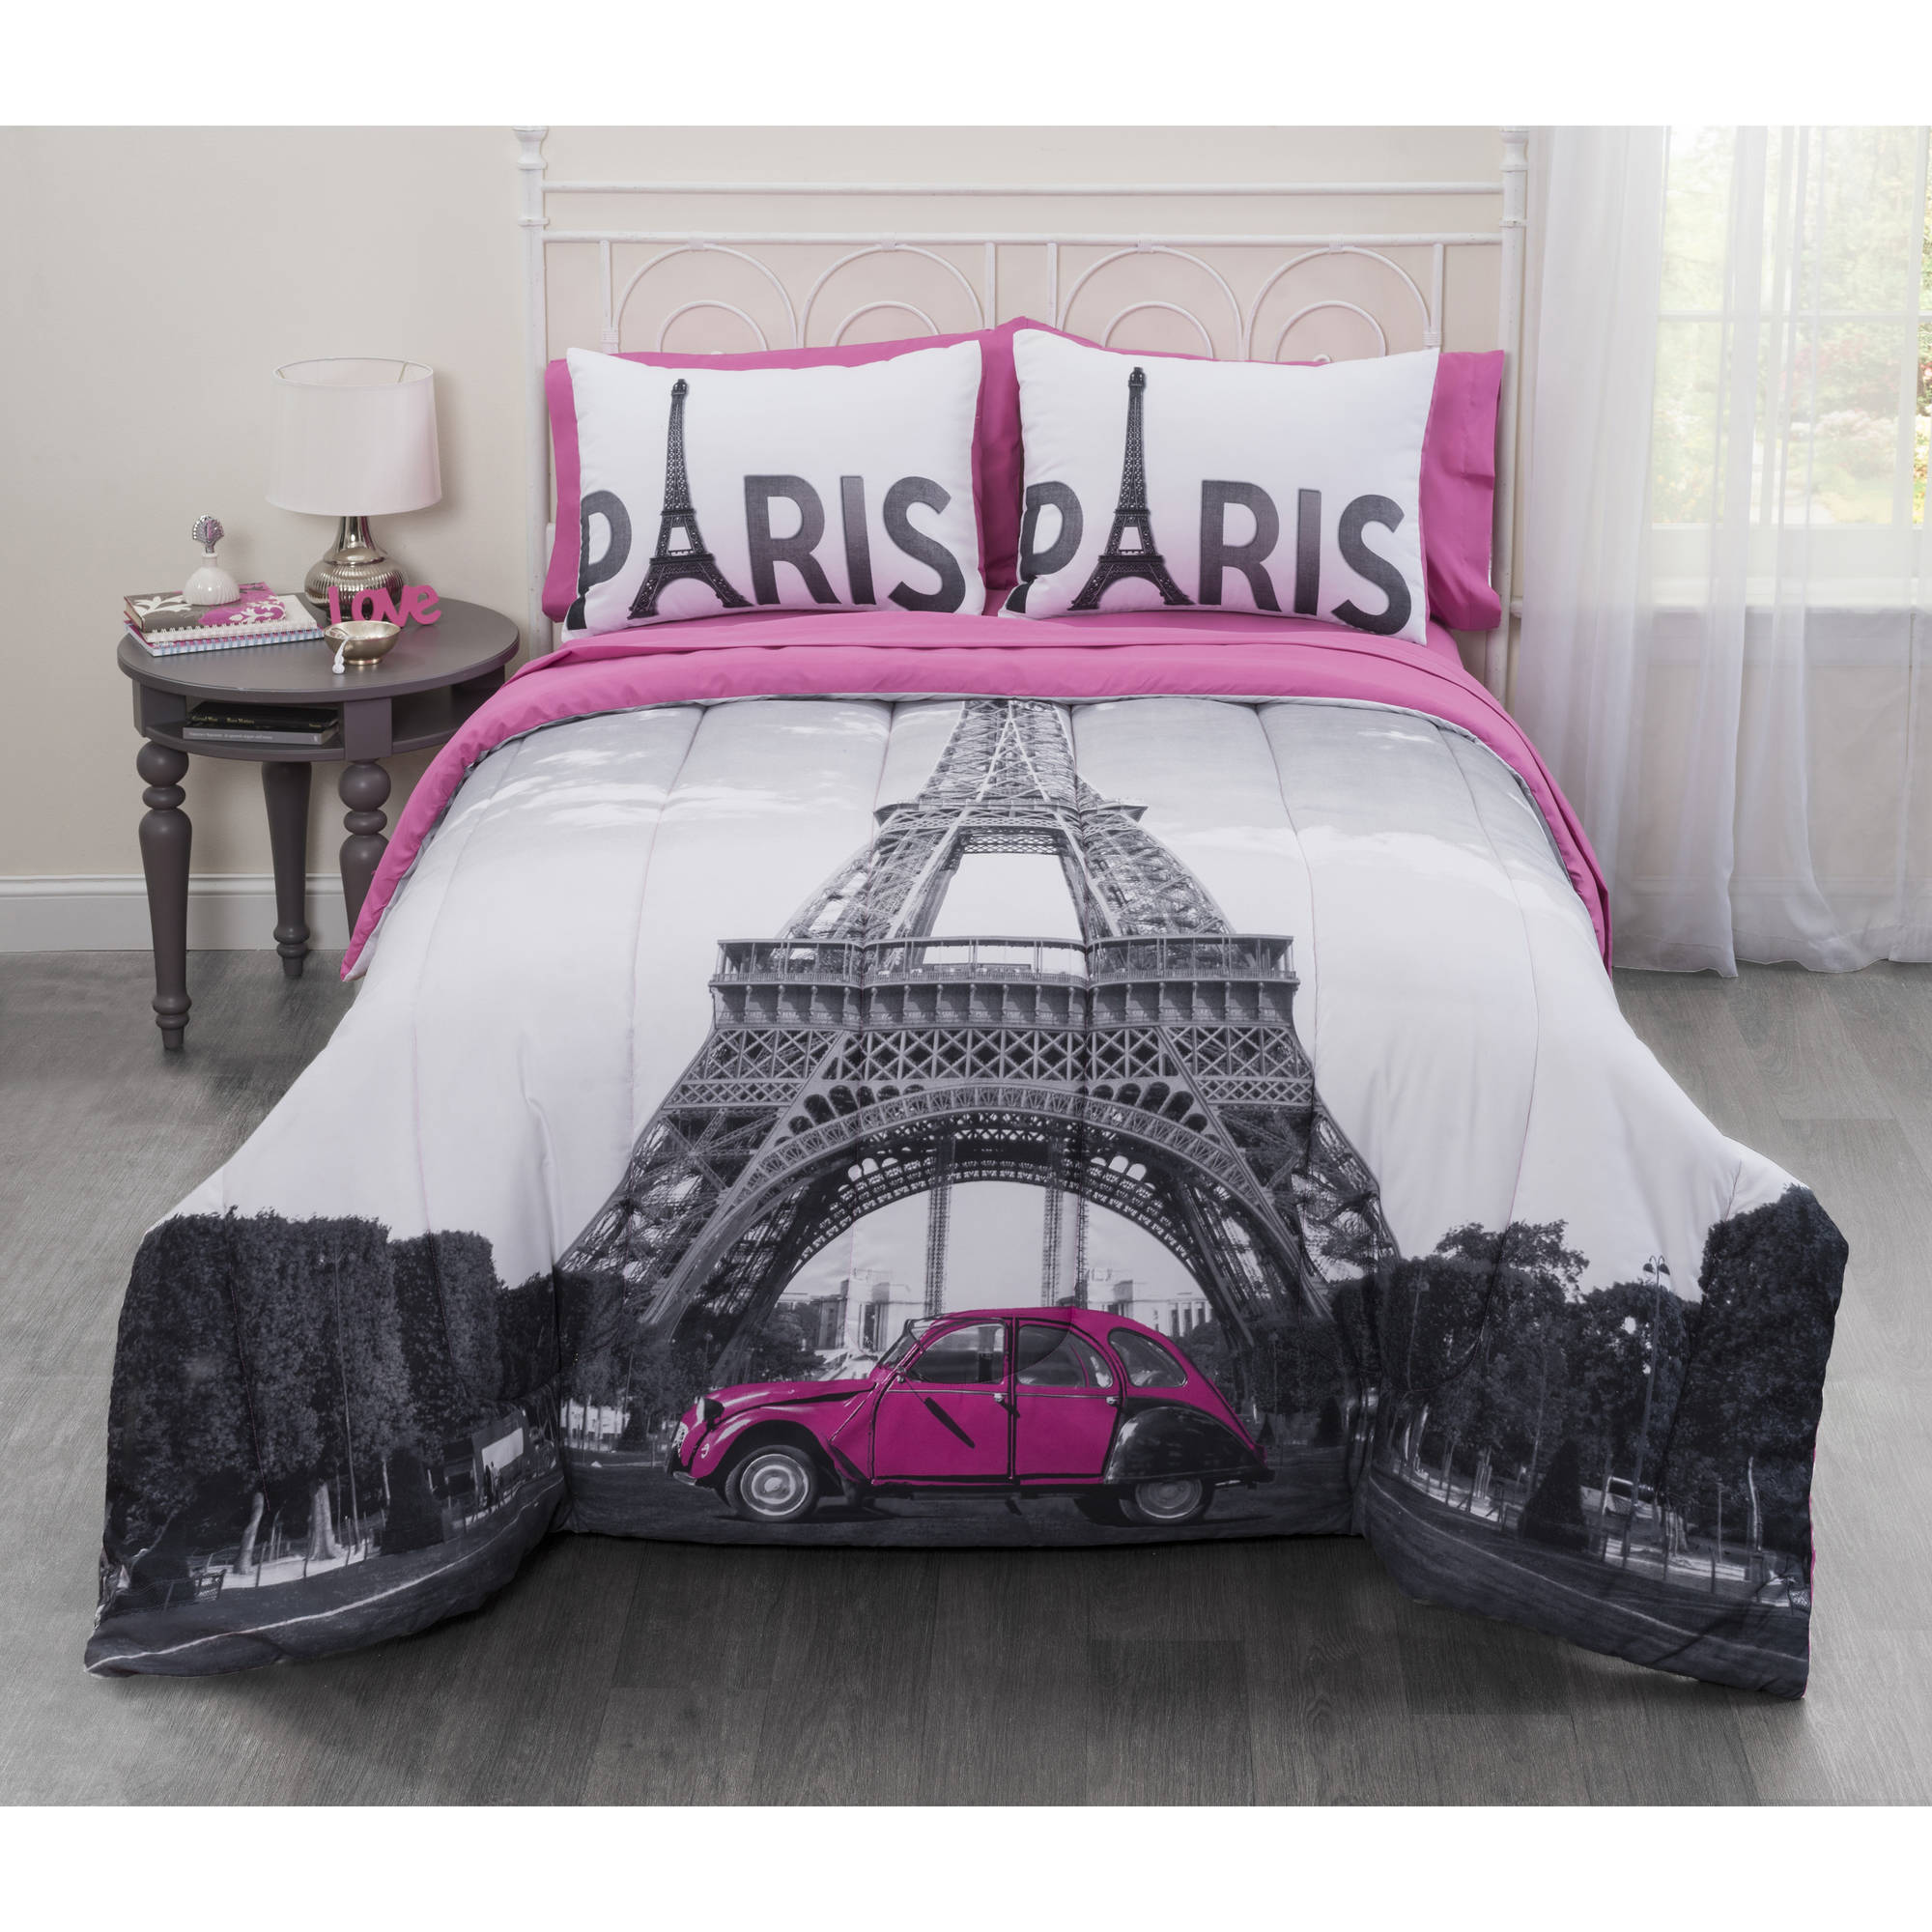 Casa Photo Real Paris Eiffel Tower Bed in a Bag Bedding Set - Walmart.com